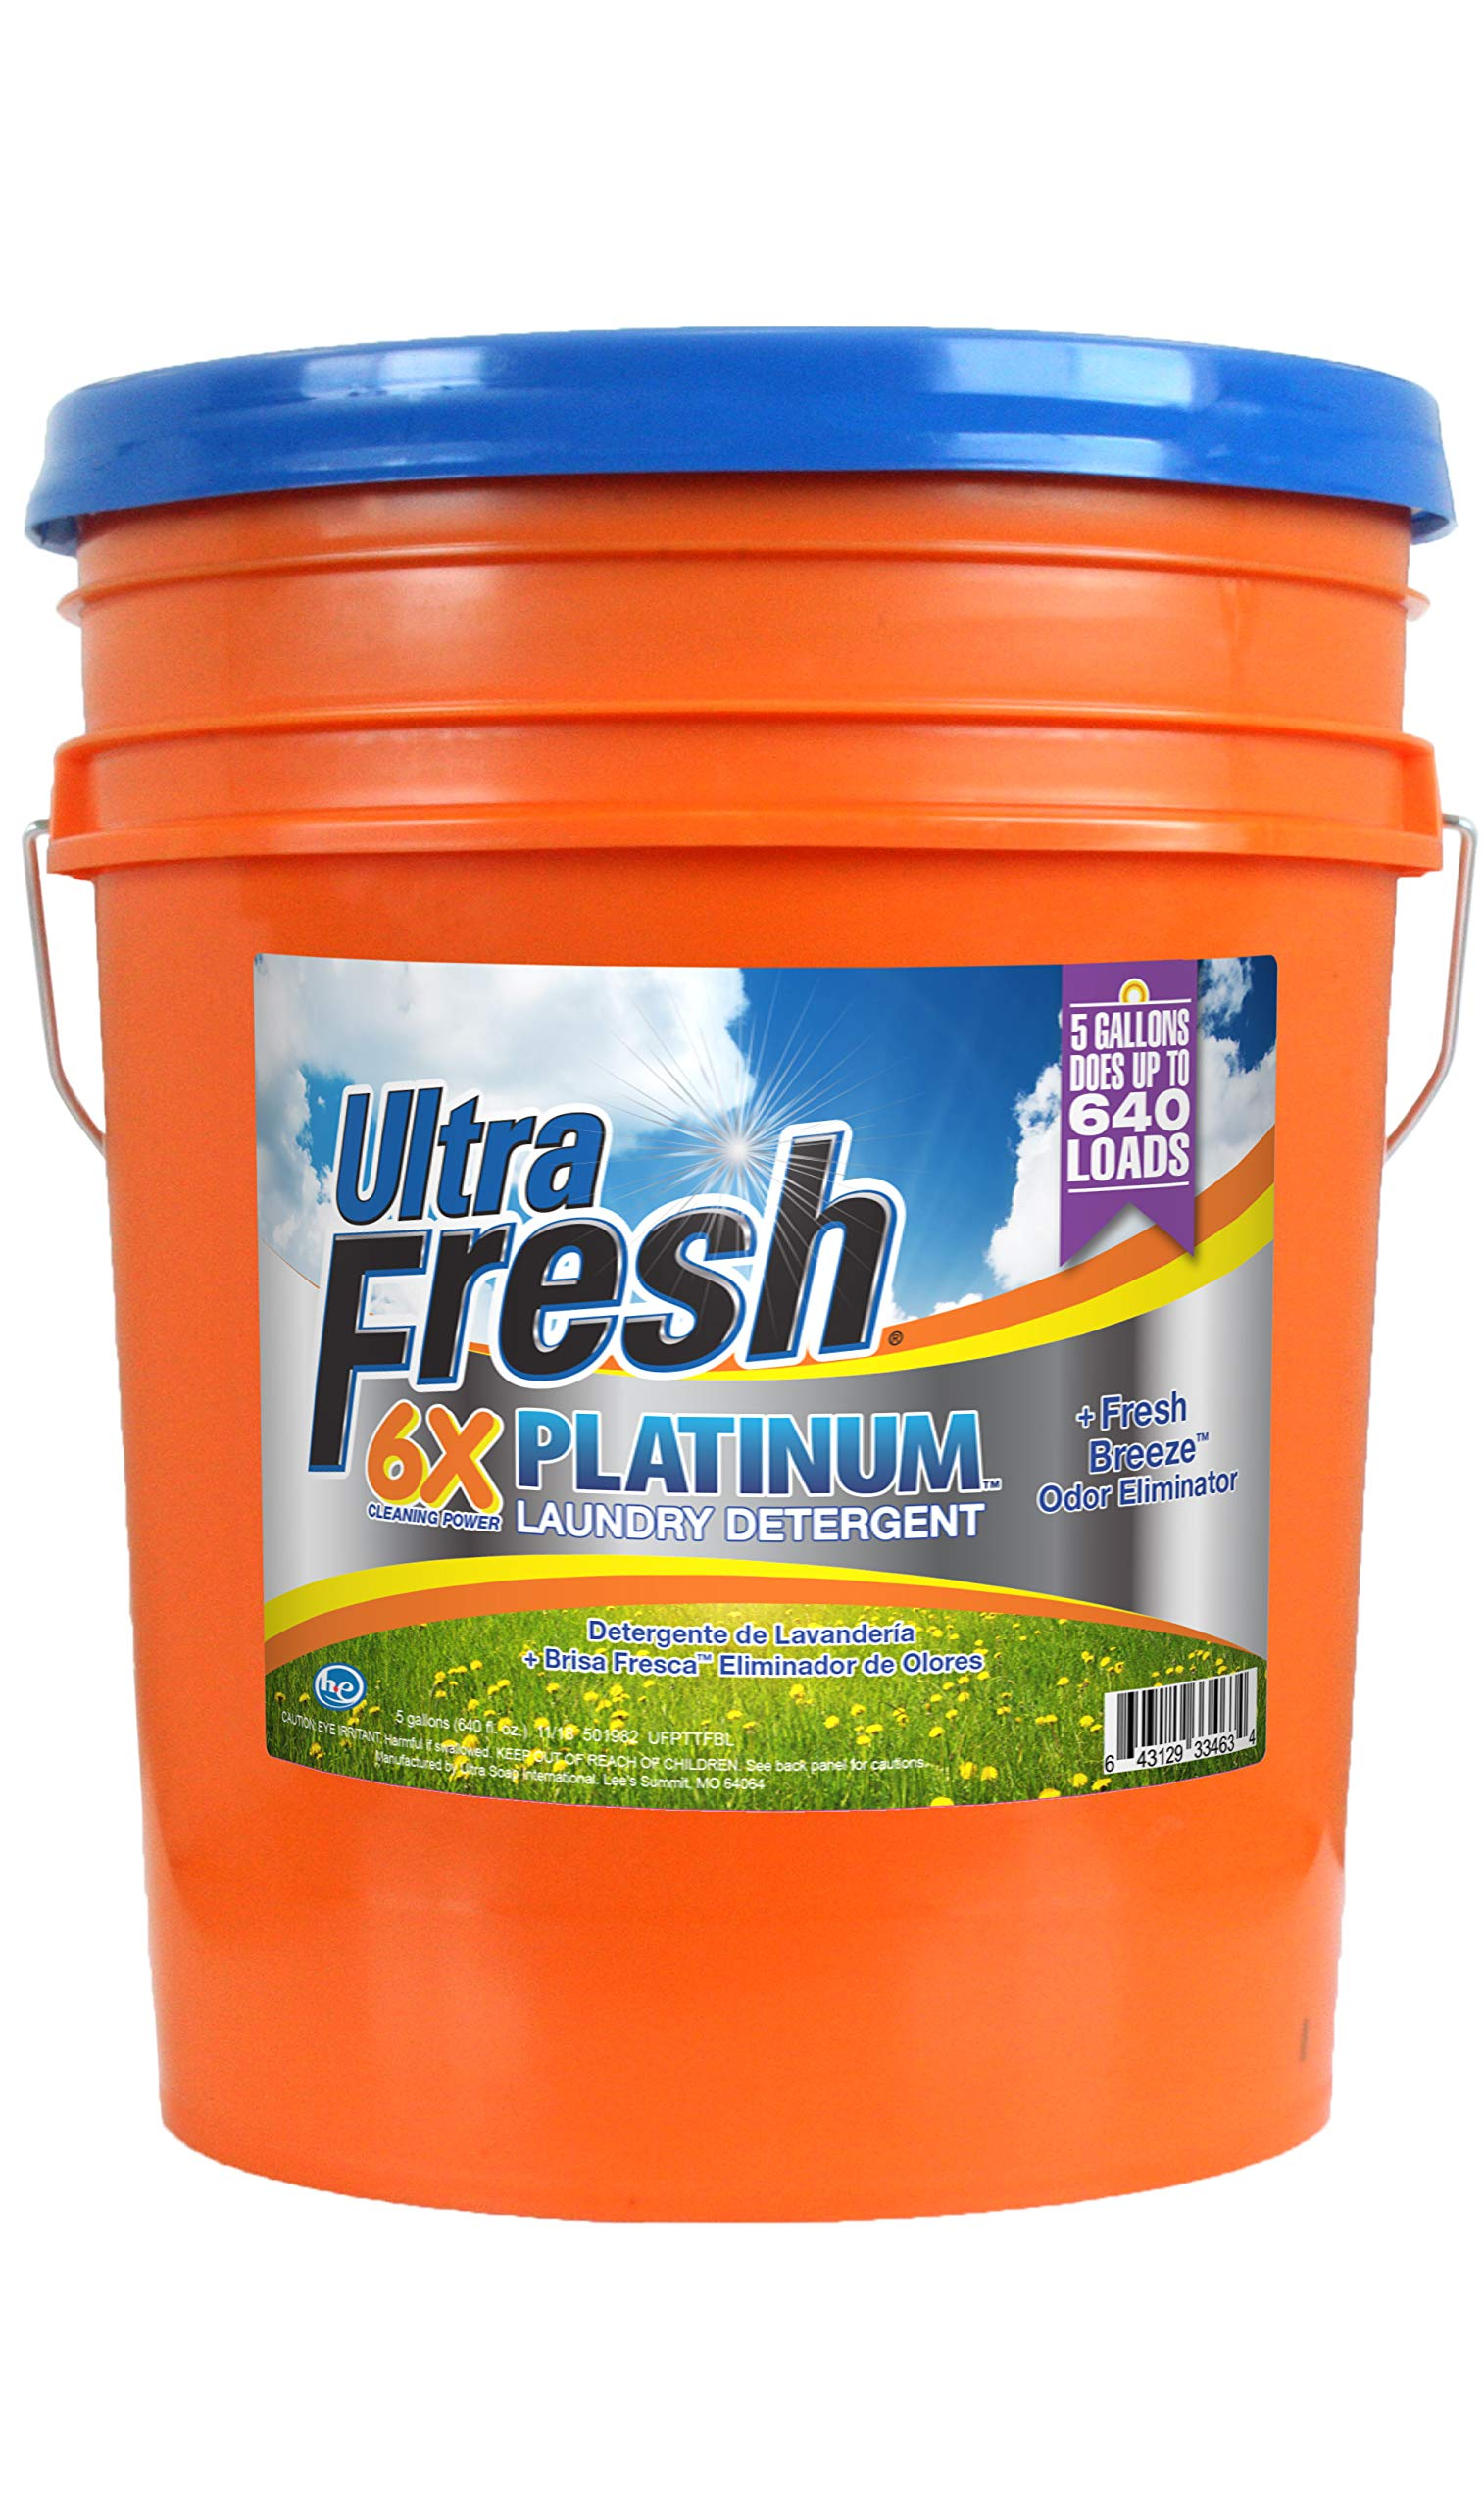 Ultra Fresh UFPTTFBL Platinum Fresh Breeze Liquid Laundry Detergent, HE, 5 gal, 640 oz. by Ultra Fresh